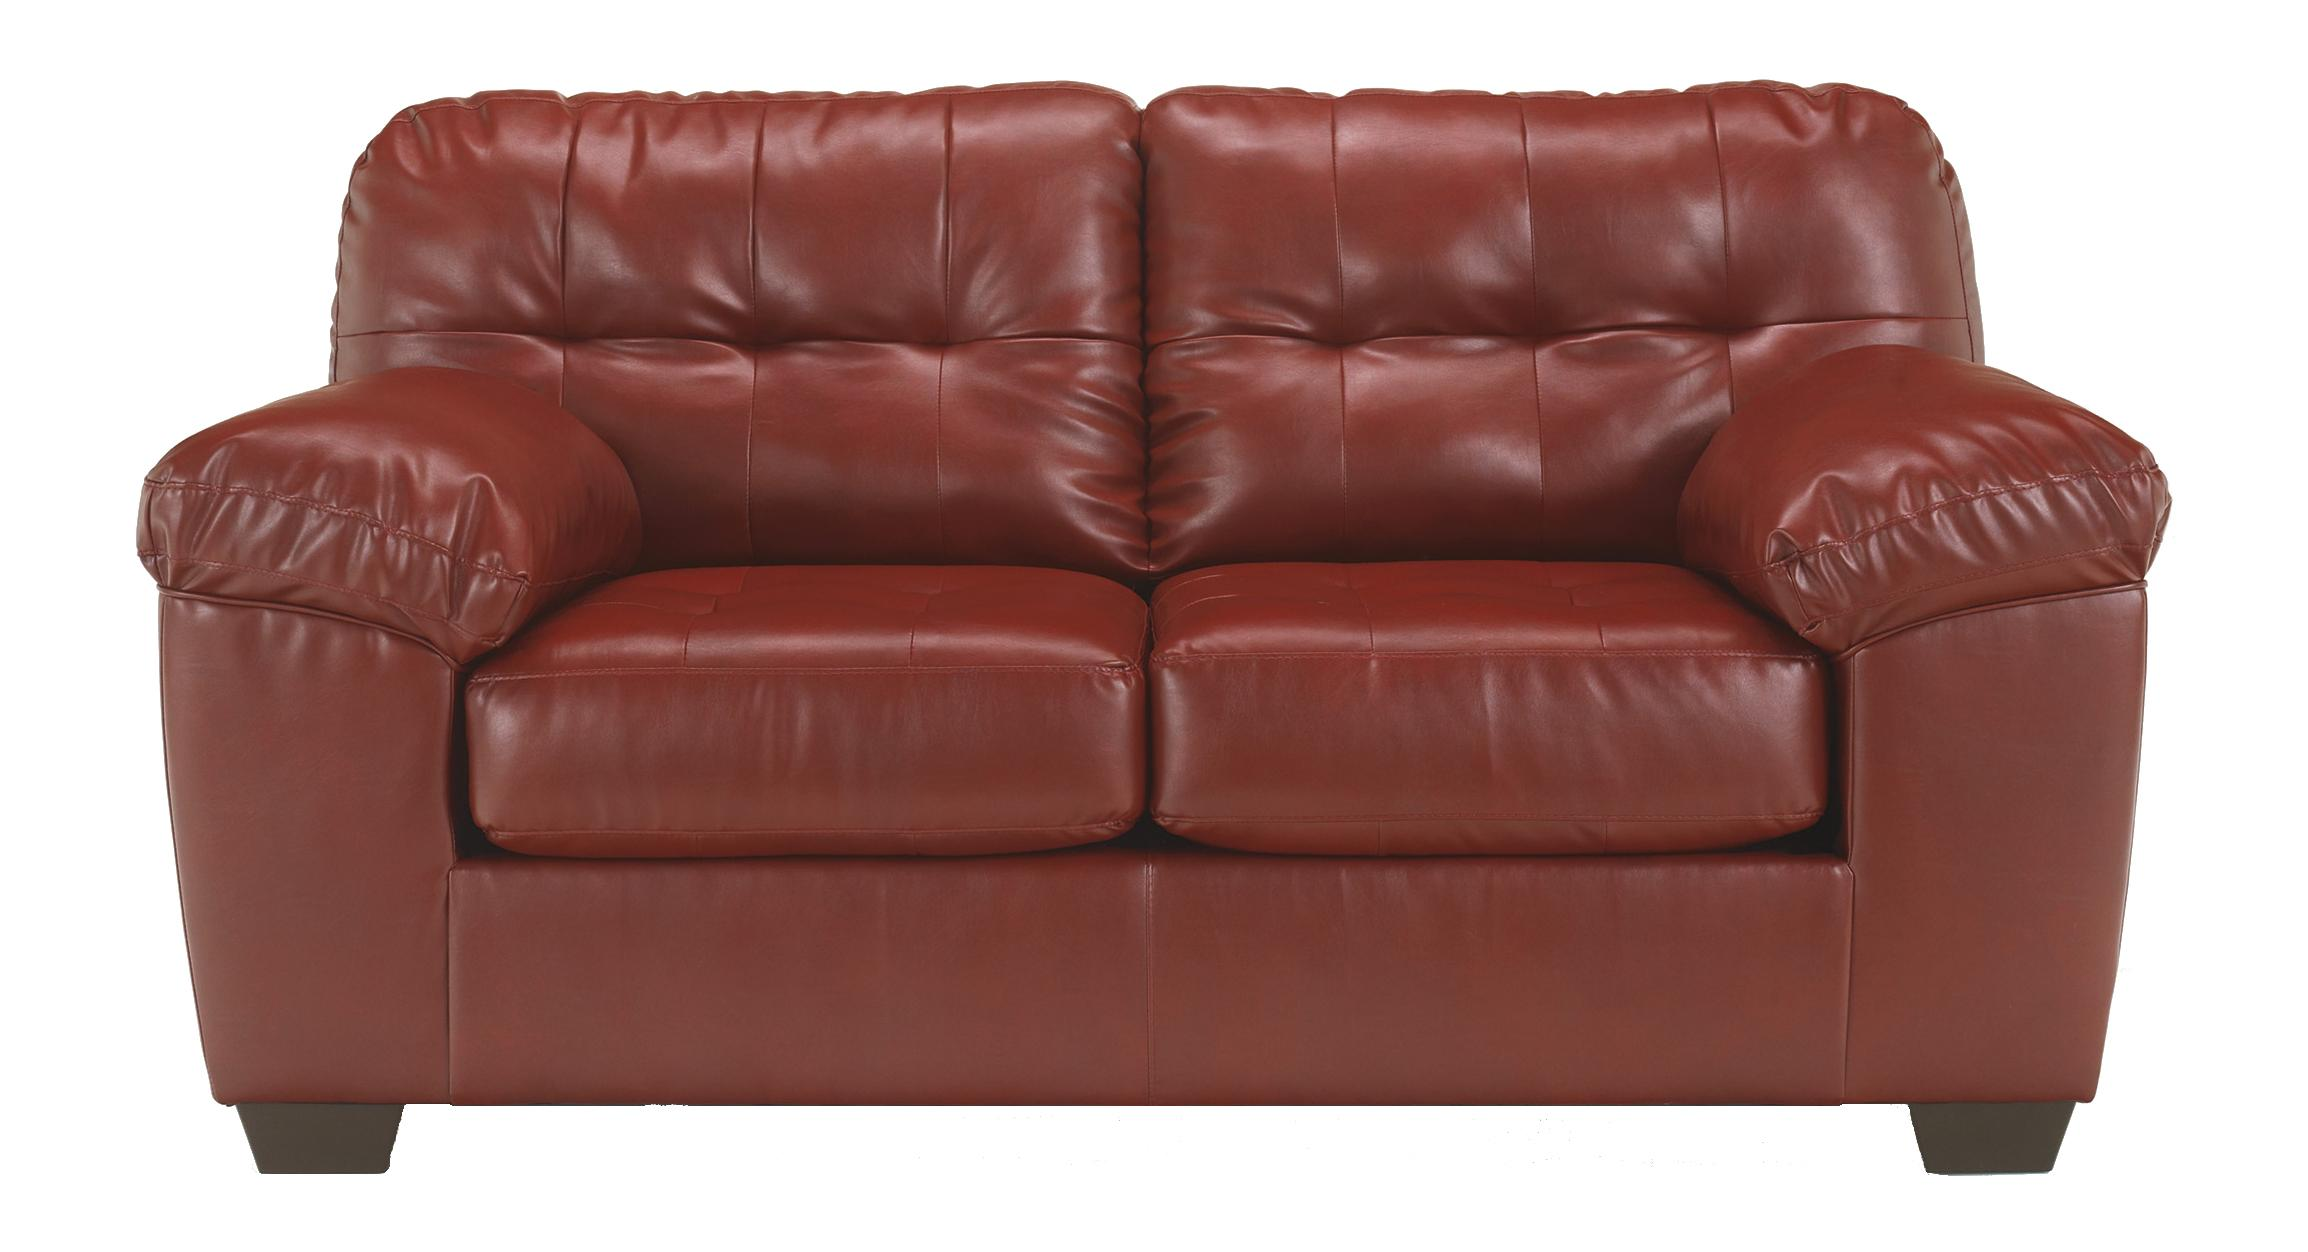 Signature Design by Ashley Alliston DuraBlend® - Salsa Loveseat - Item Number: 2010035